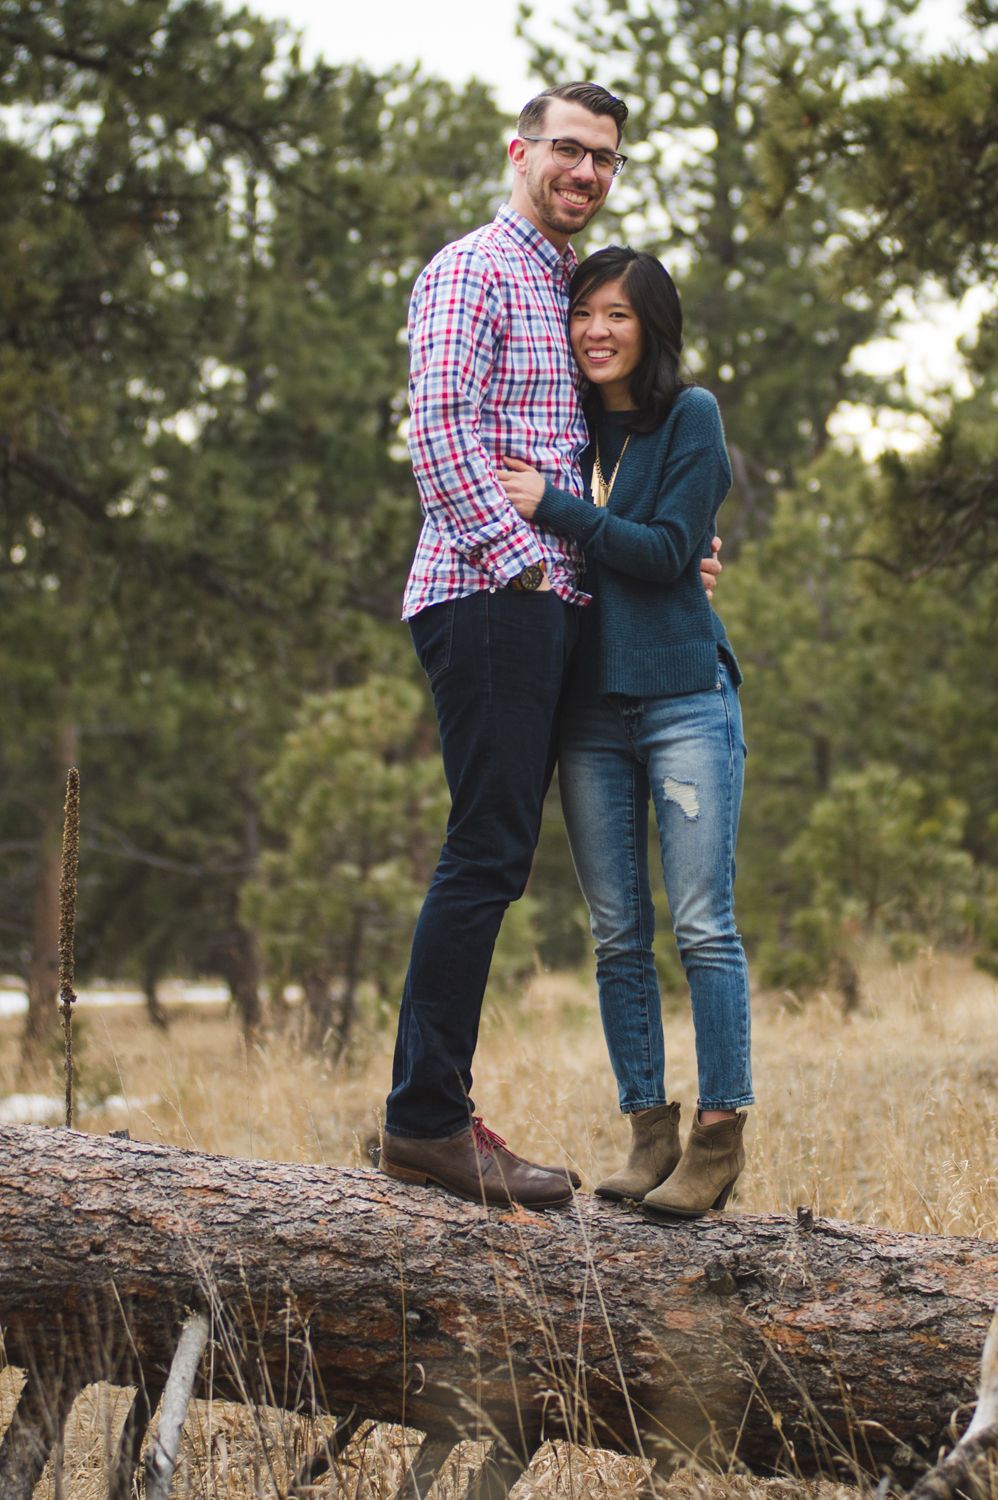 TiffanyandMark_Engaged_0262_squarespace.jpg